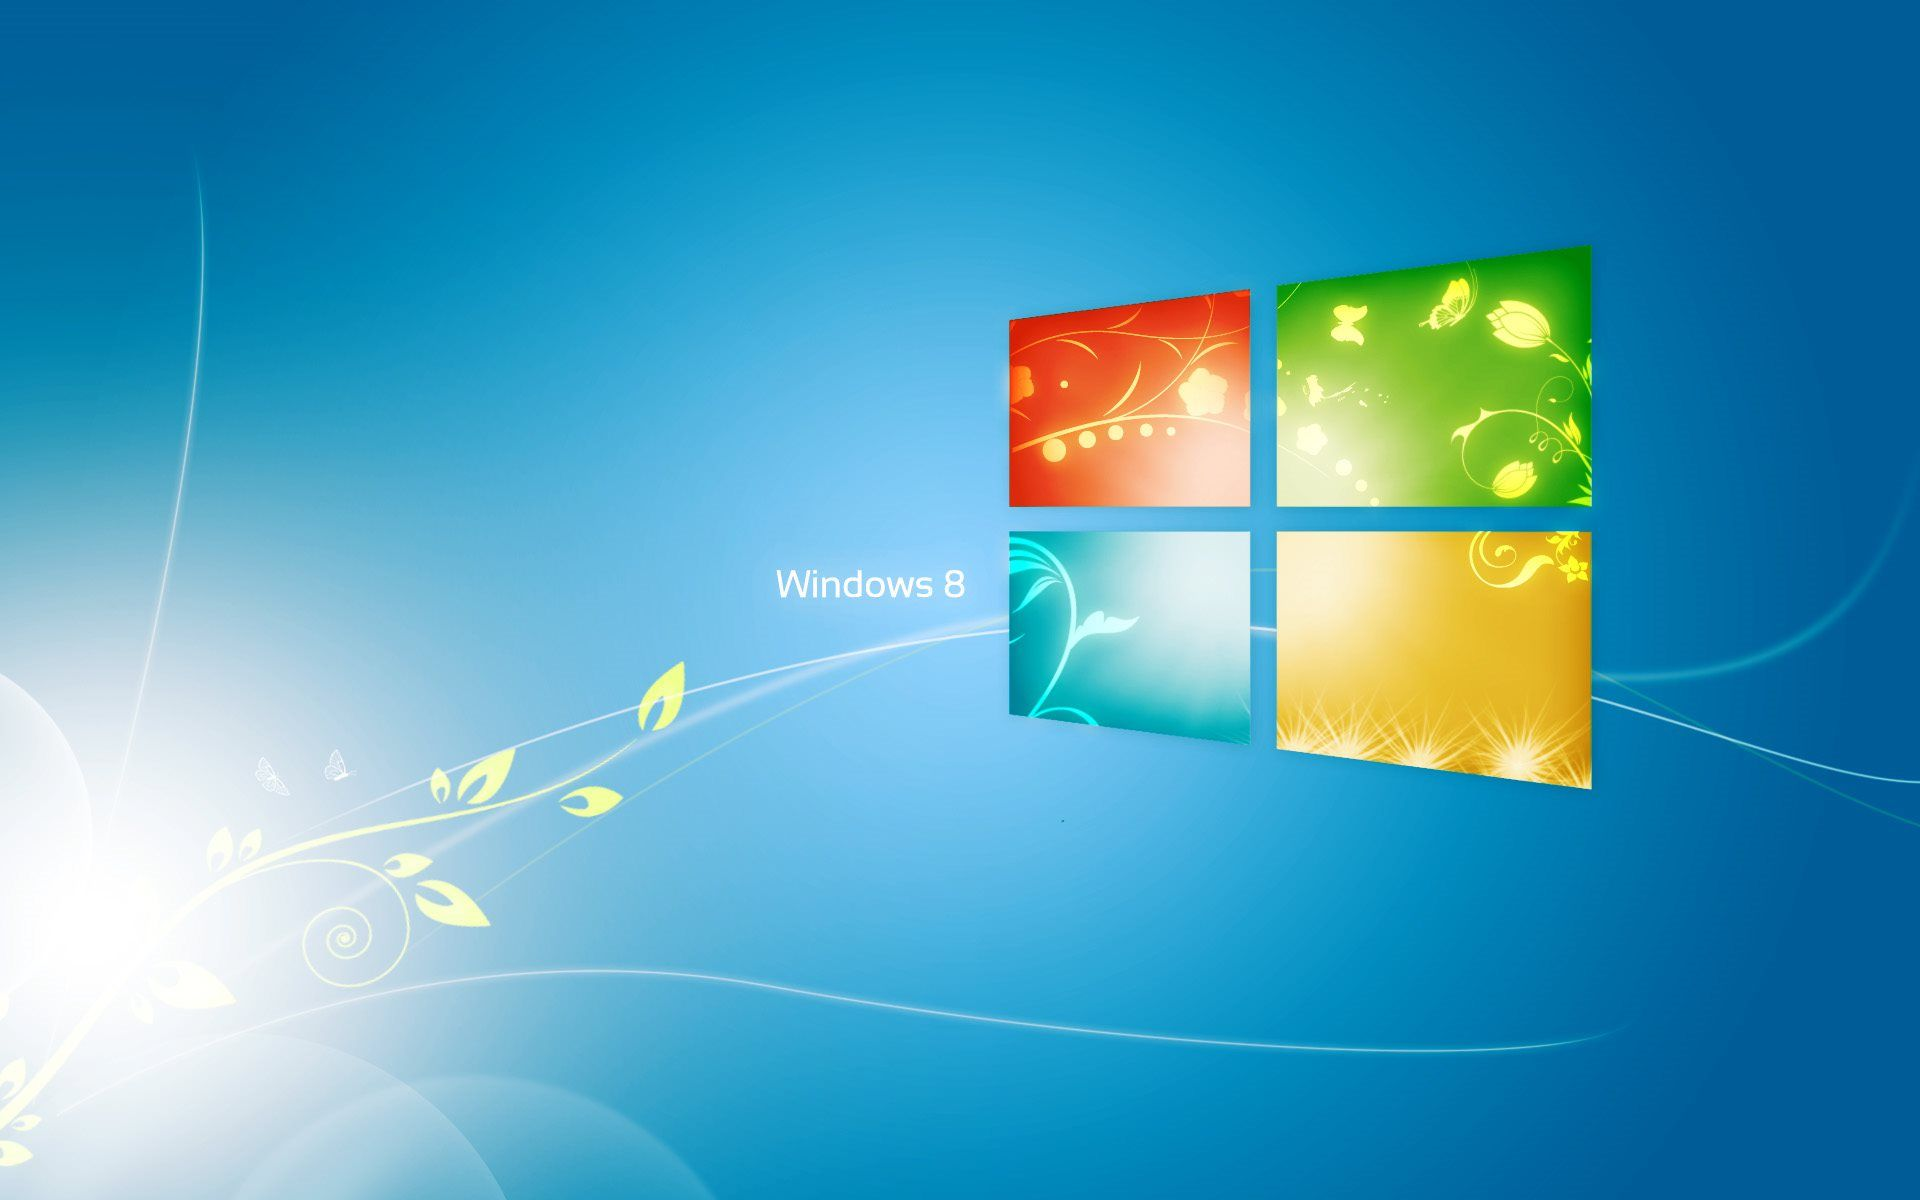 Windows 8 Blue Green Red Yellow Hd Wallpaper Windows Wallpaper New Wallpaper Hd Desktop Wallpaper